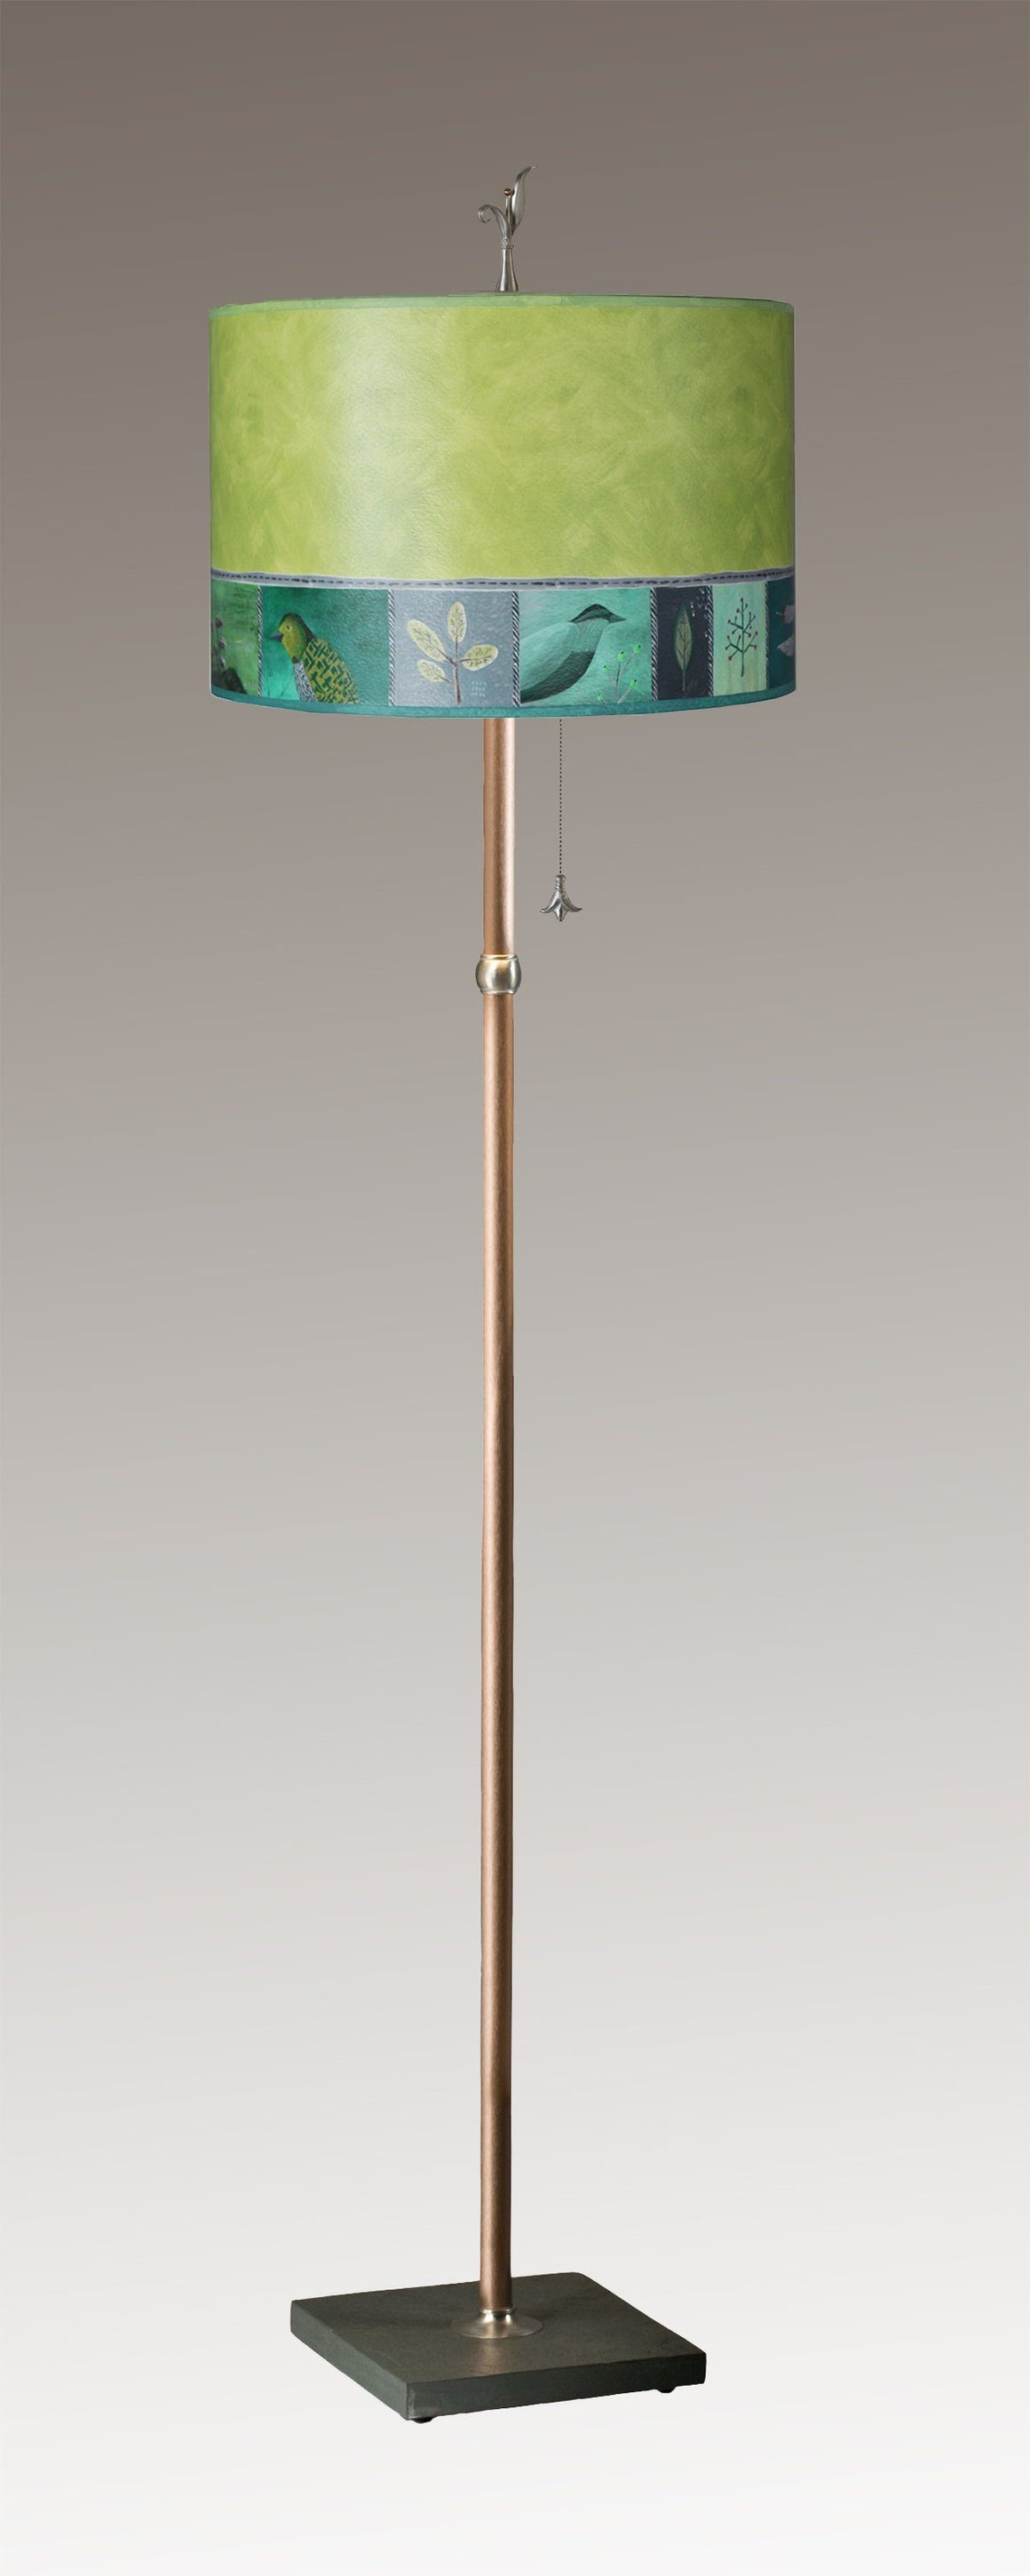 Copper Floor Lamp on Vermont Slate with Large Drum Shade in Woodland Trails in Leaf